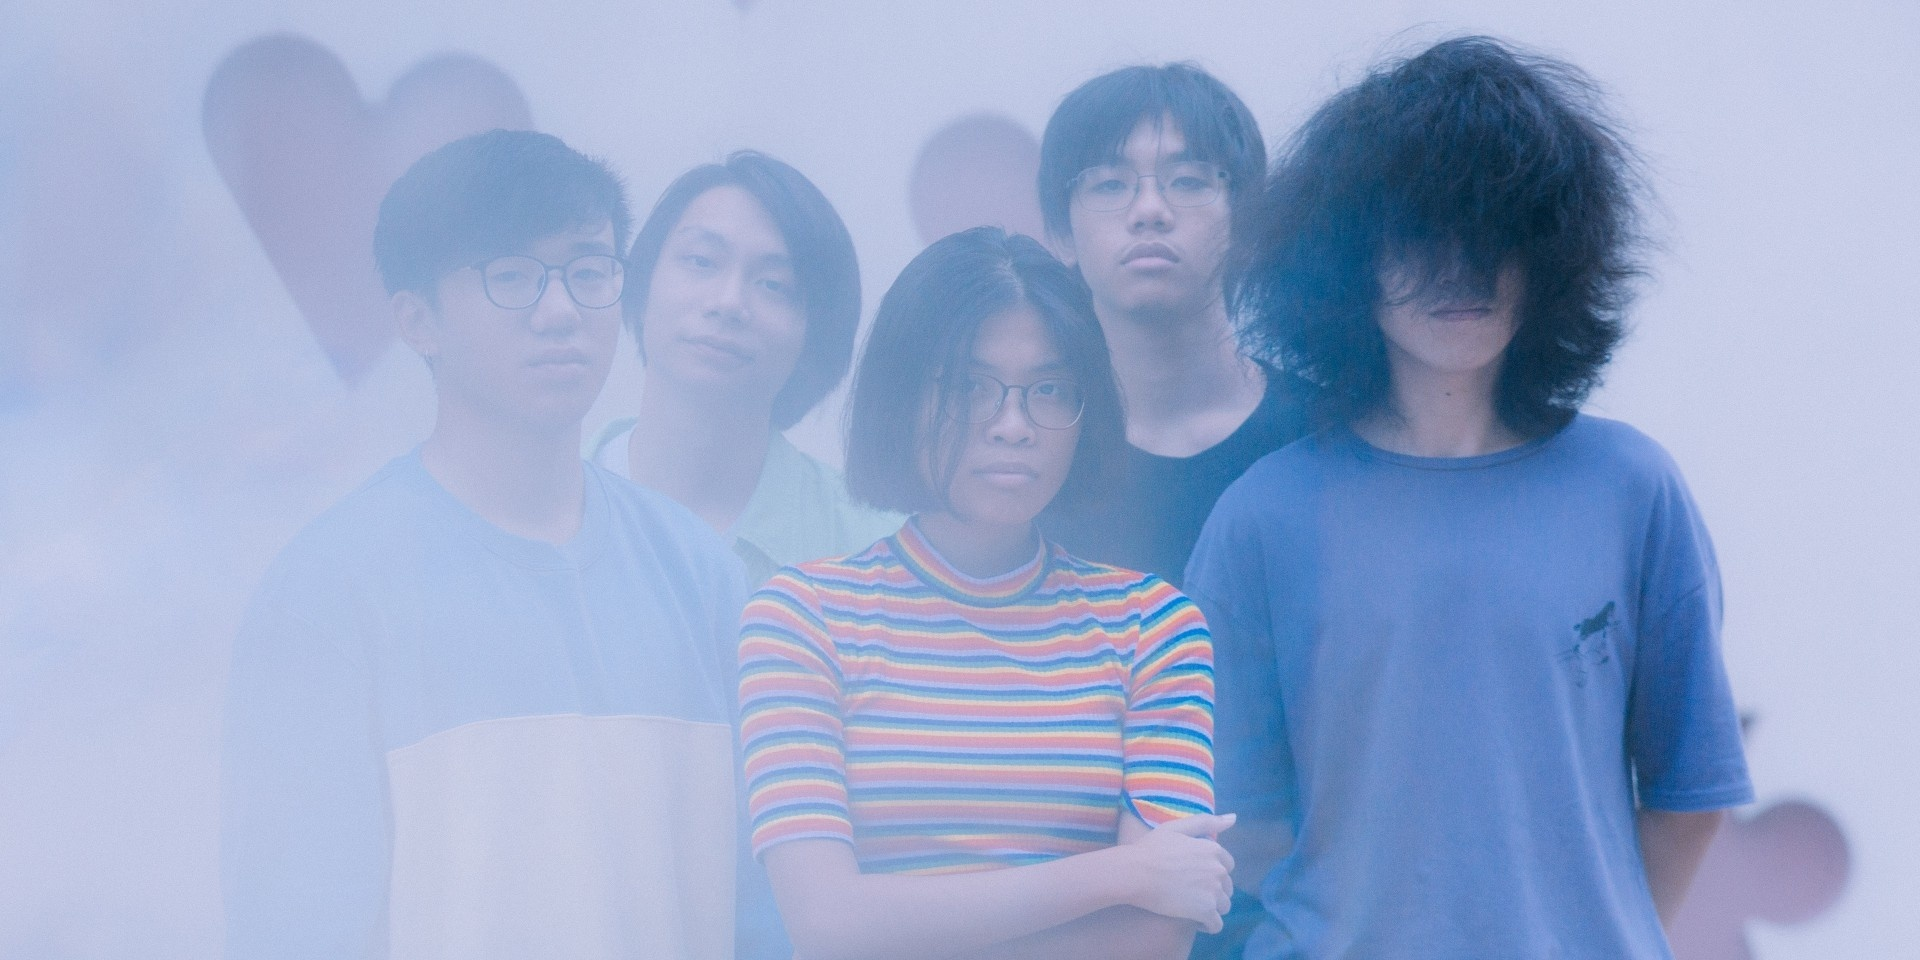 Subsonic Eye releases gorgeous new single 'The Tired Club' - listen